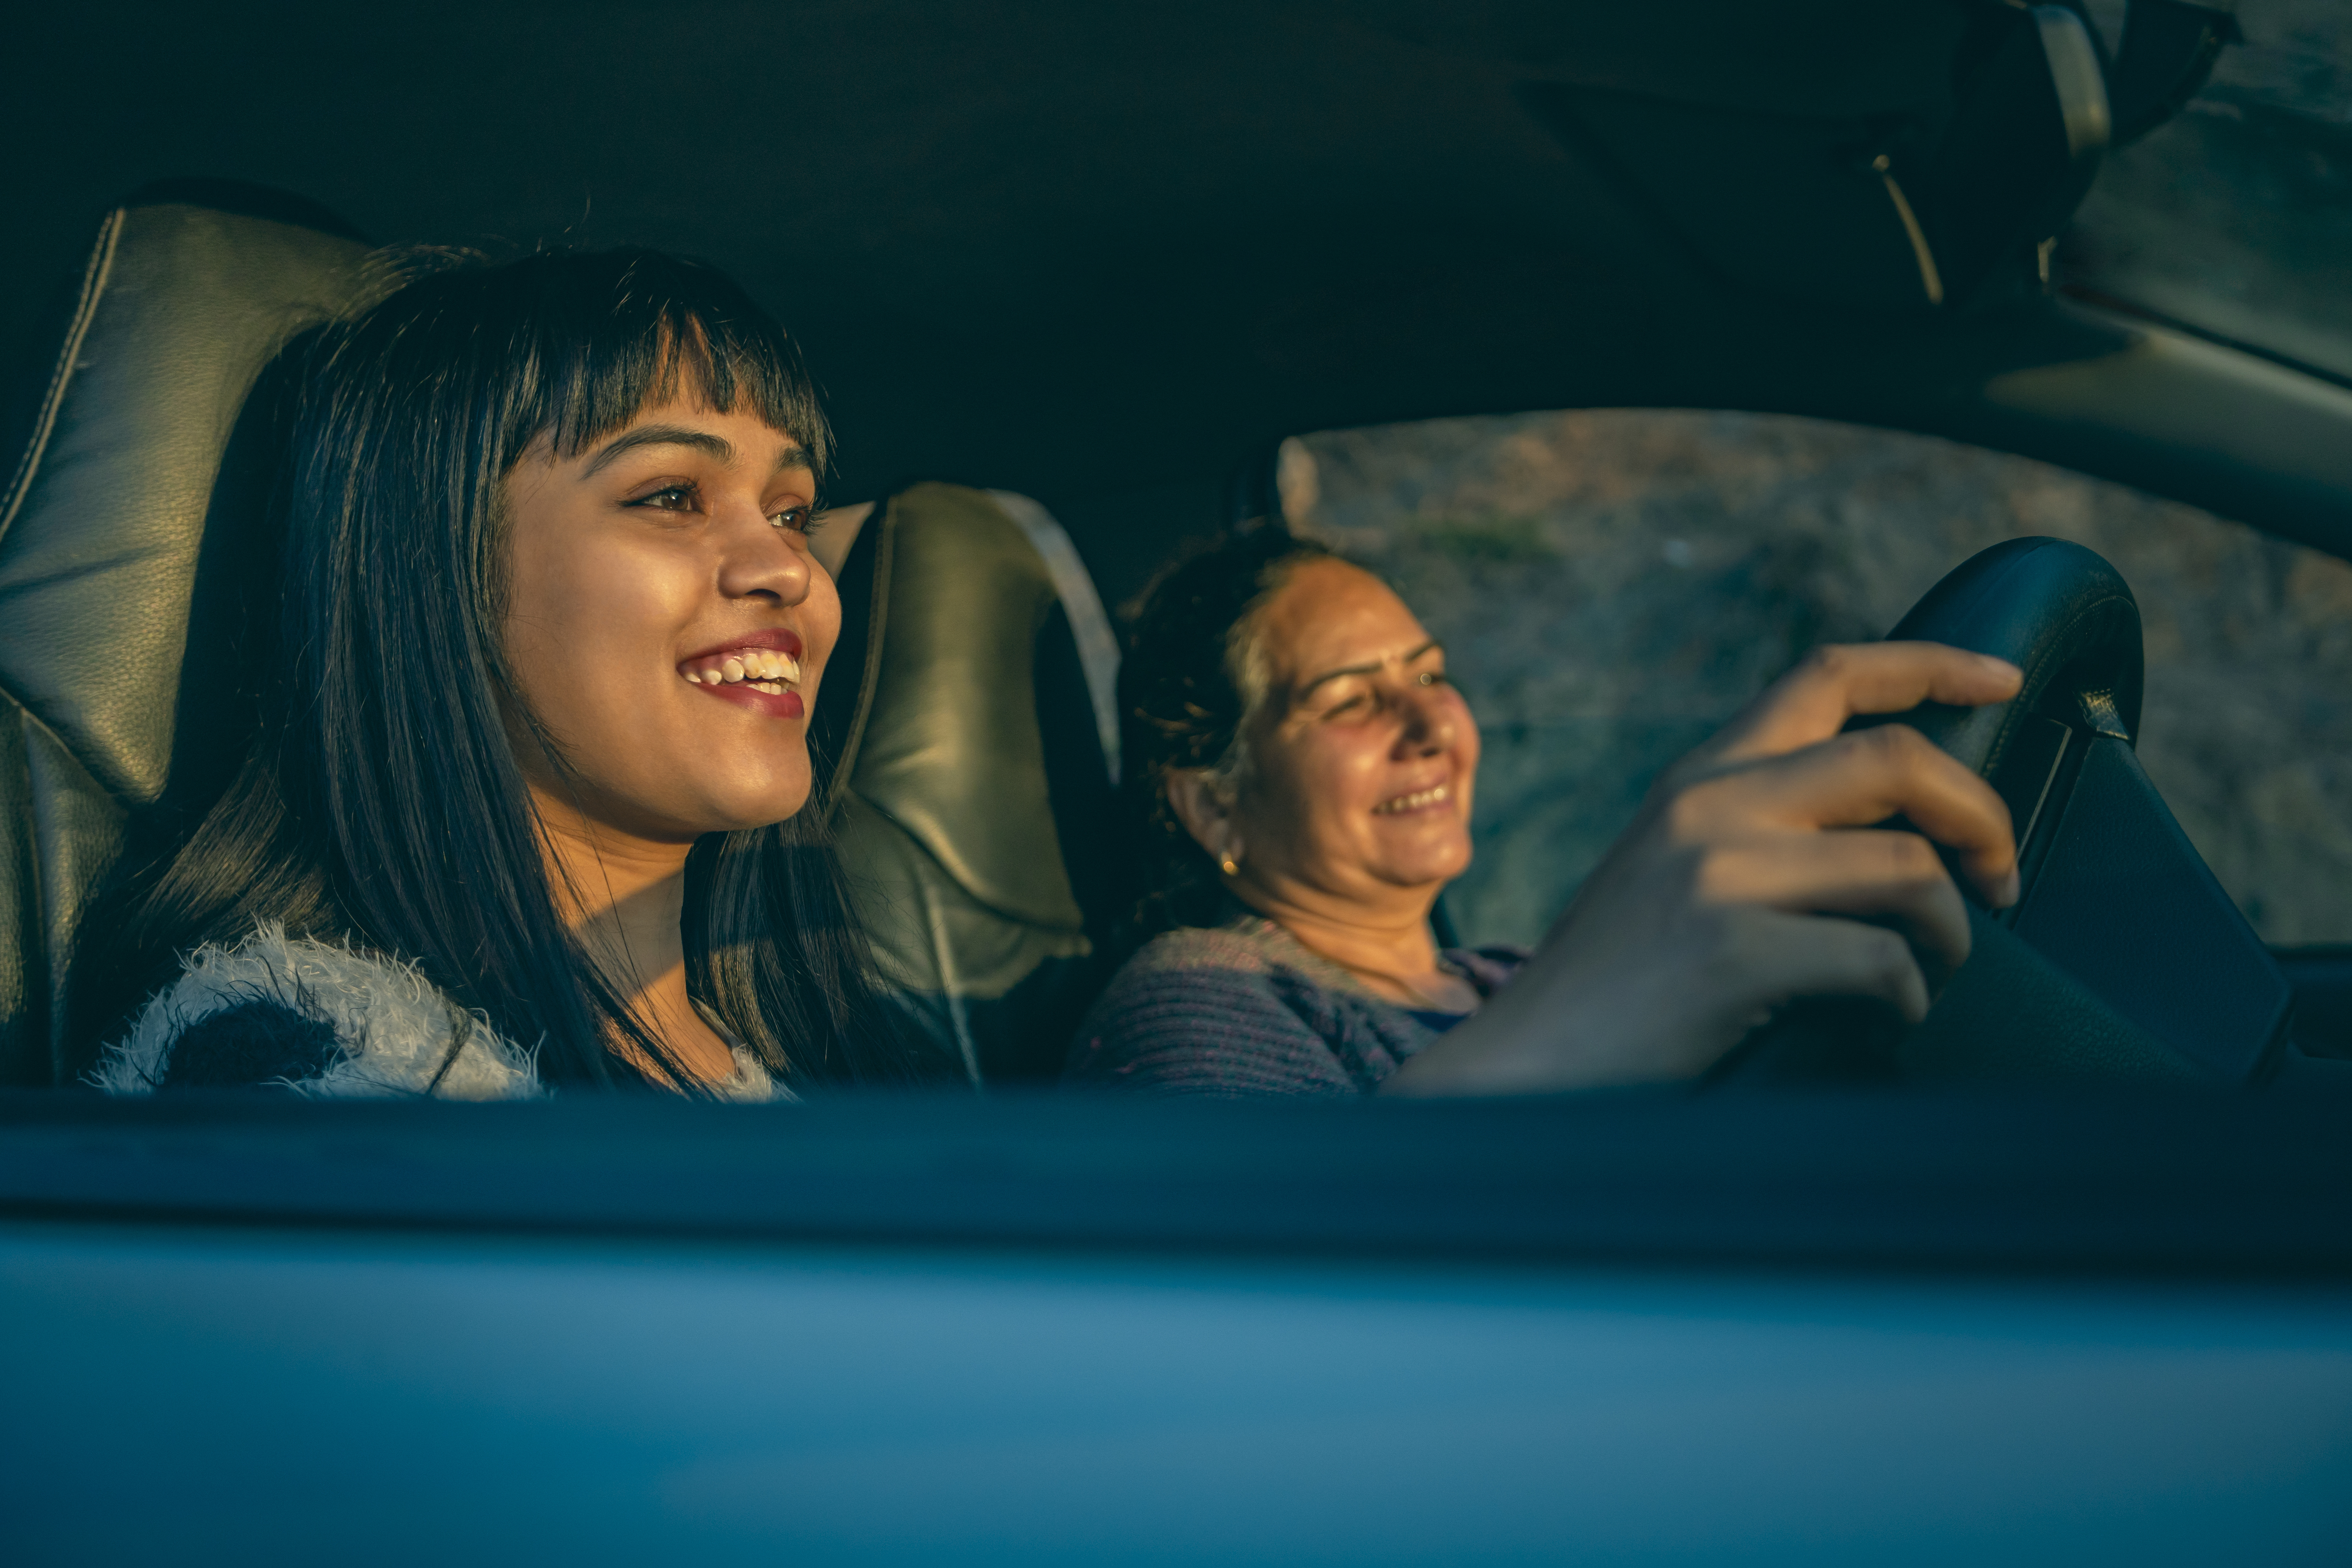 Increase your chances of staying safe on the road